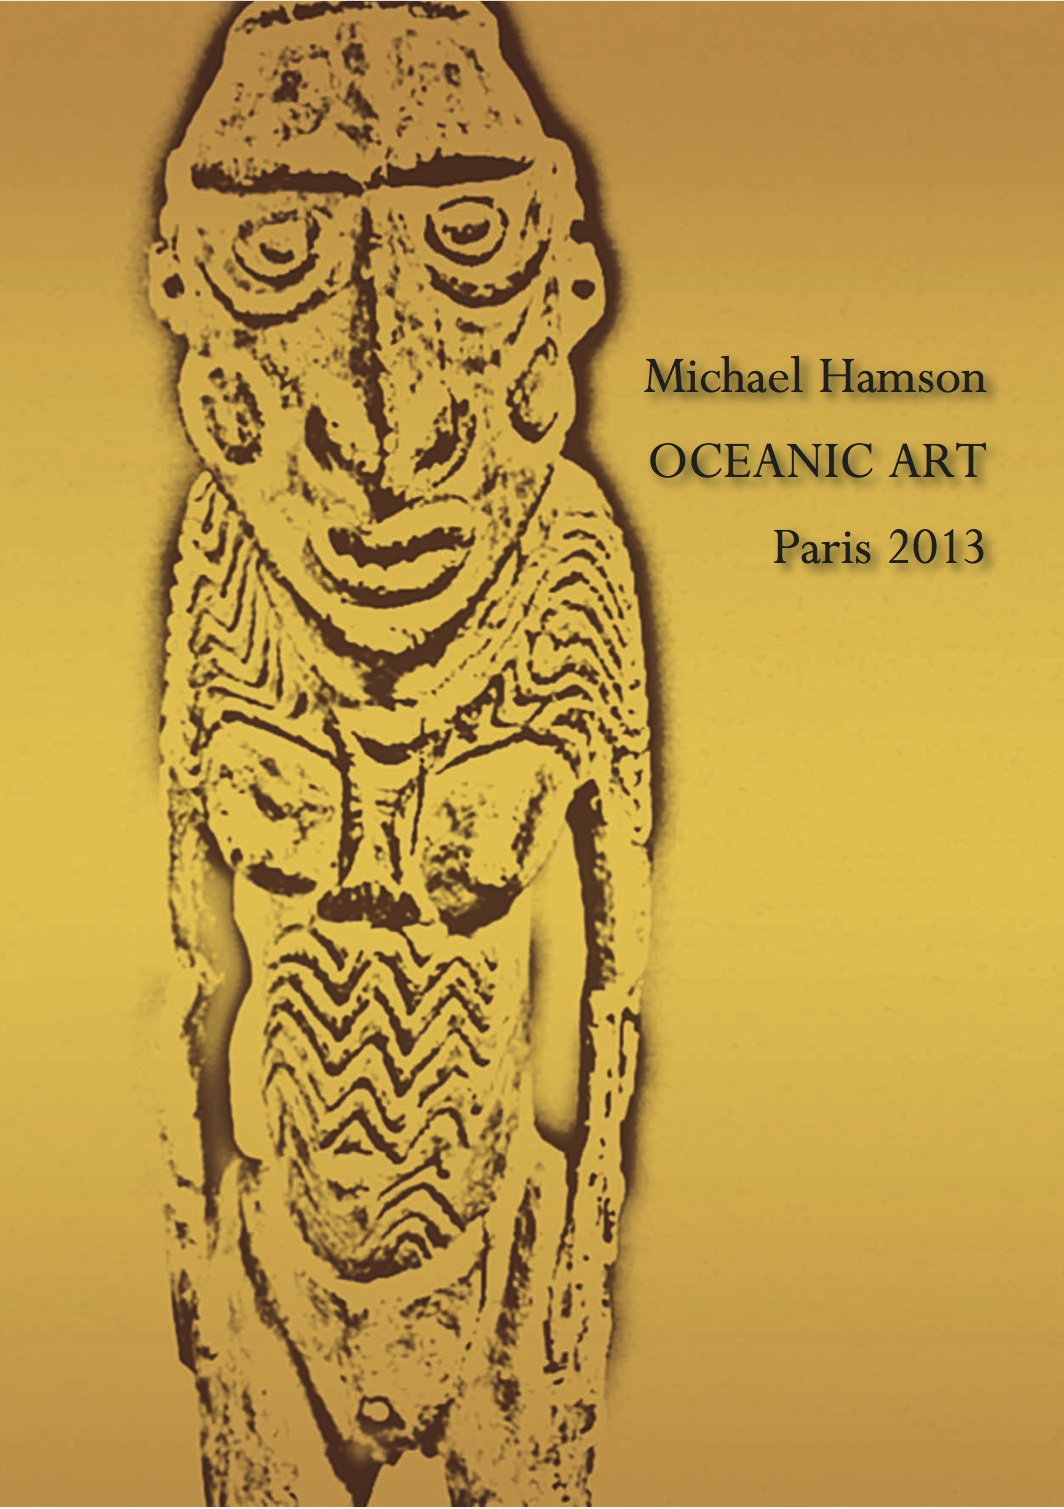 Michael Hamson Publications | Oceanic Art Paris 2013